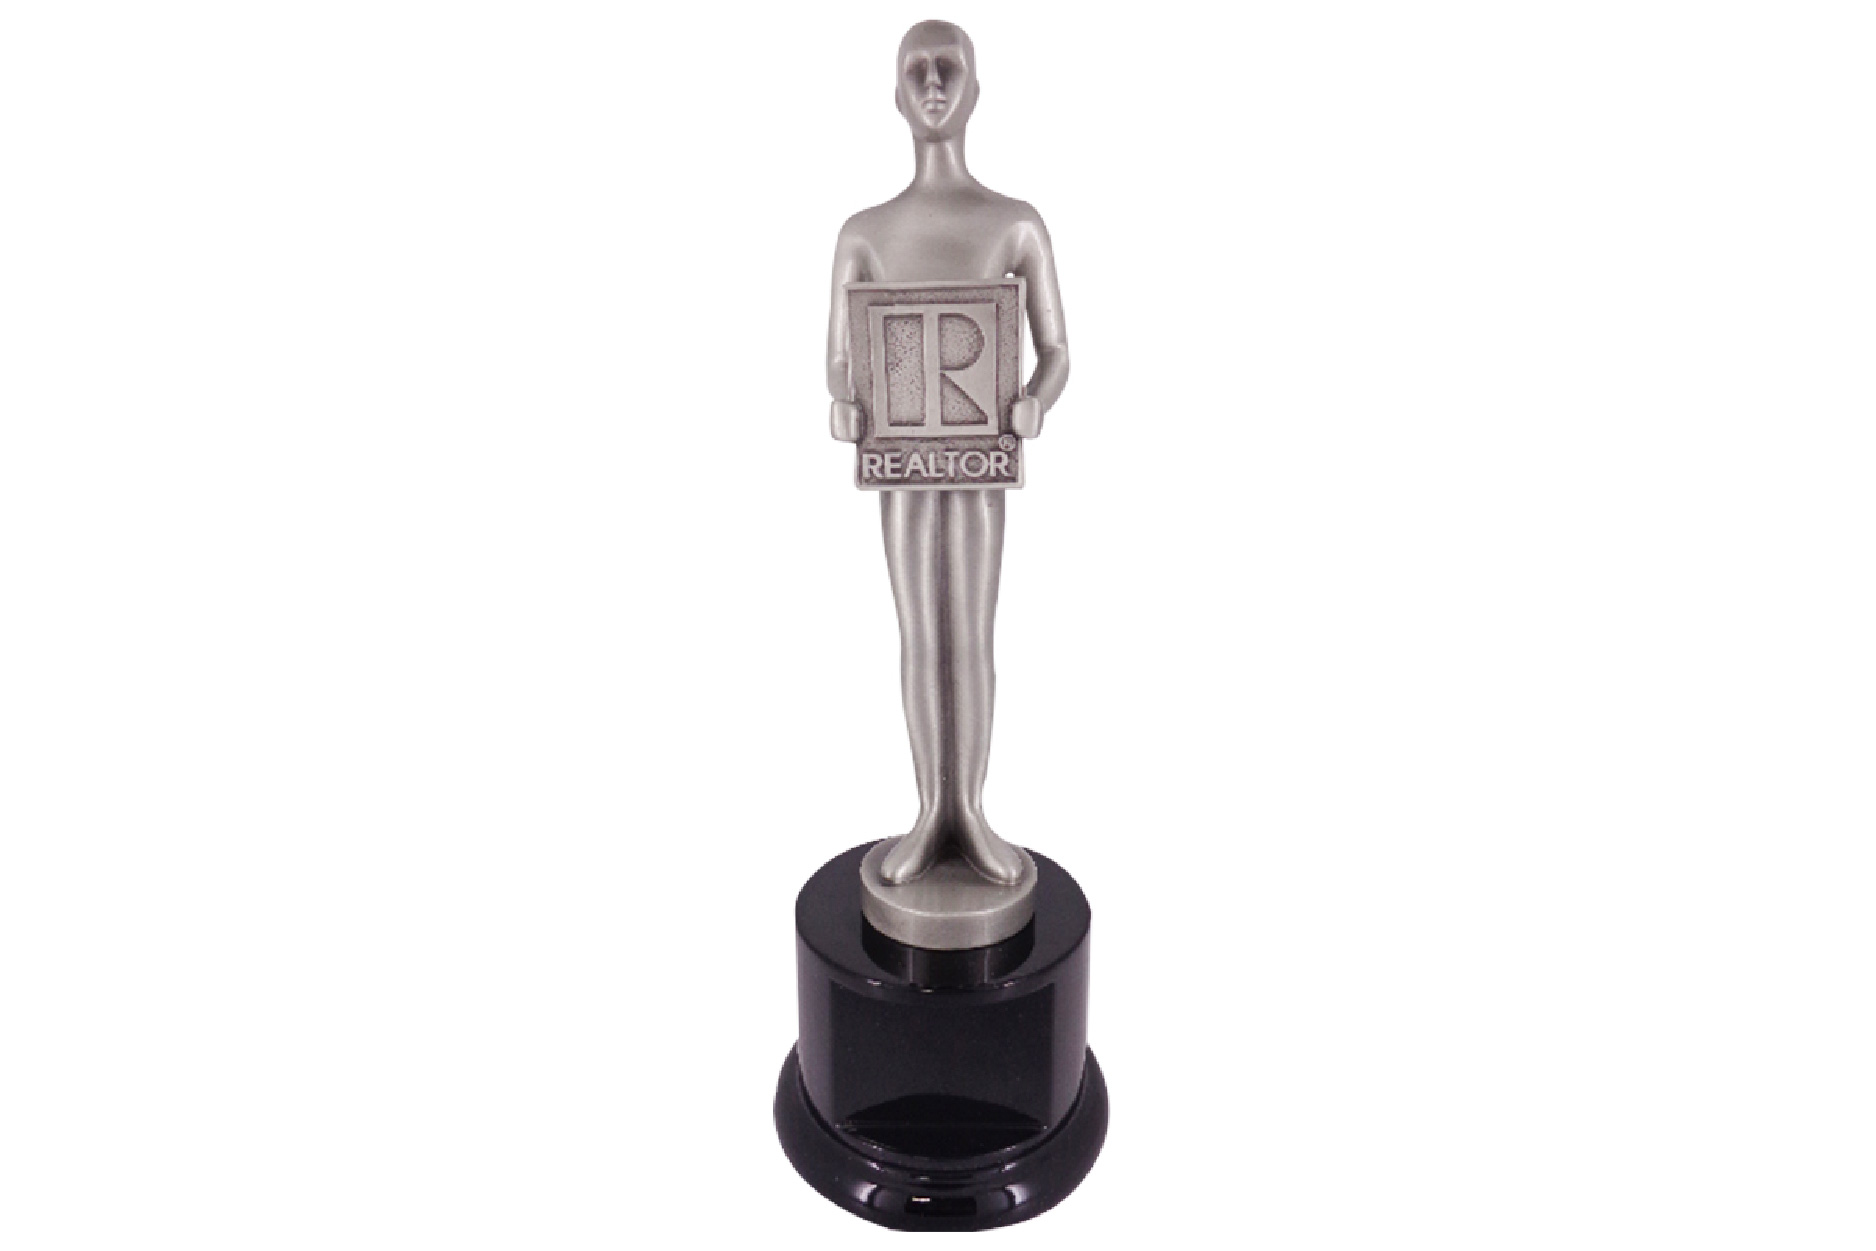 A proudly-posed figure custom made to recognize top agents. The form is crafted in cast metal with a brushed pewter finish.